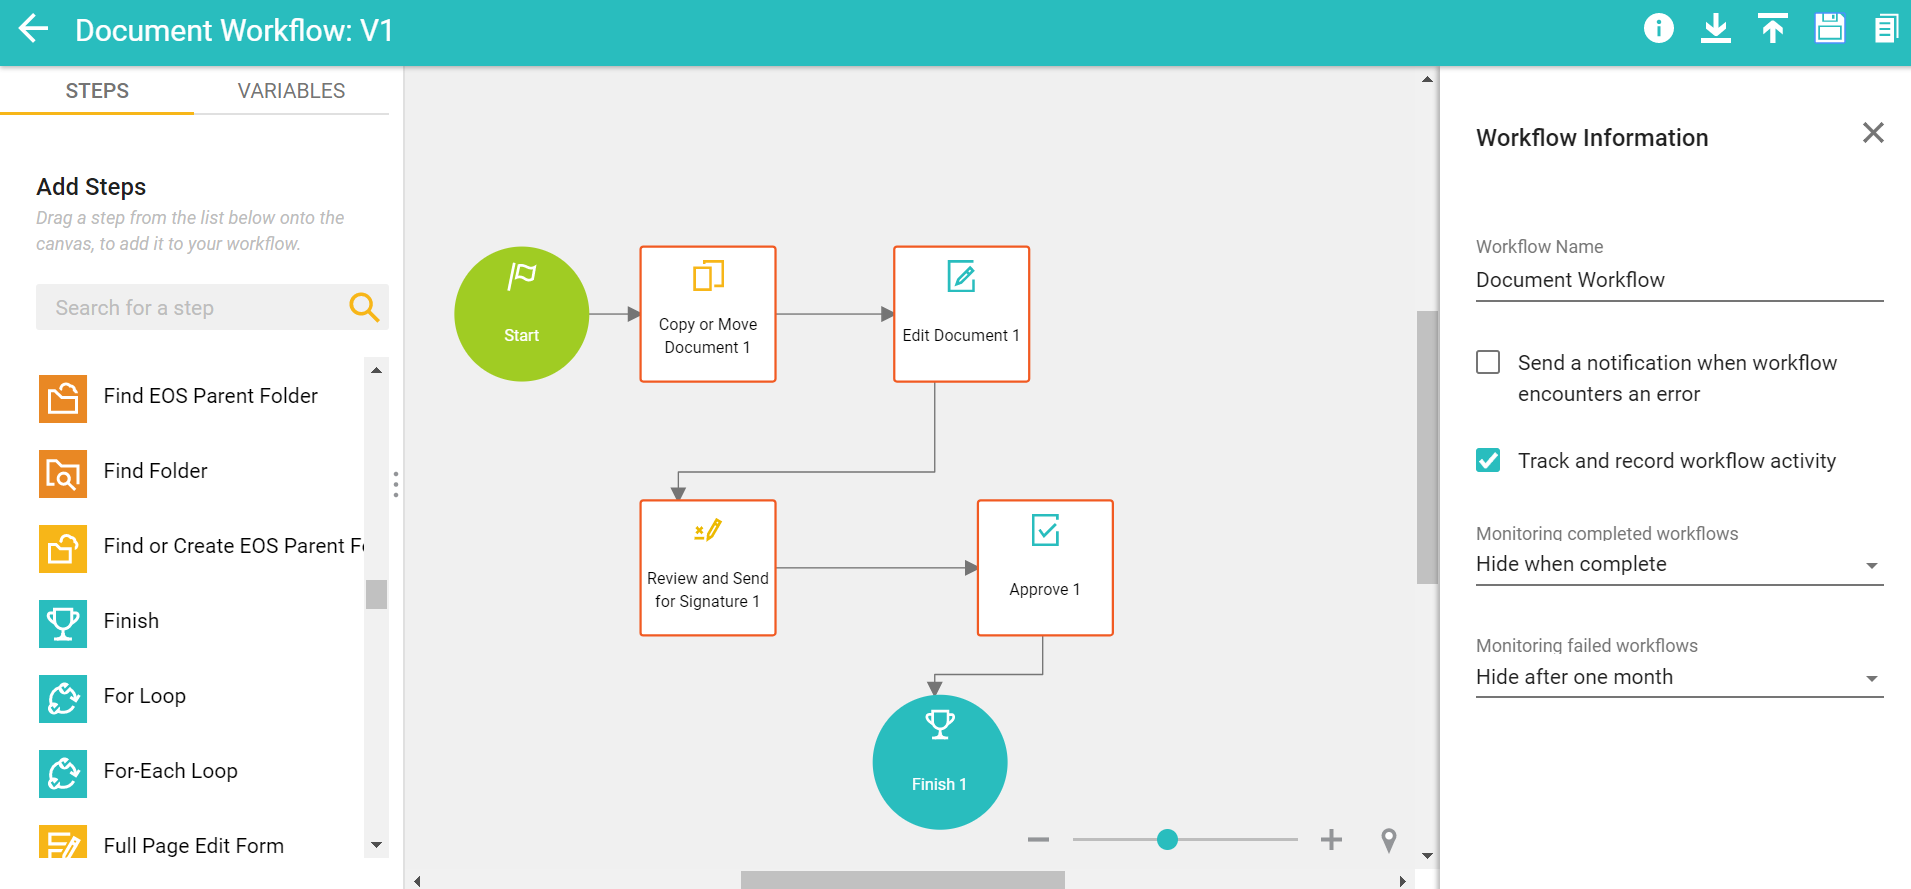 SpringCM Demo - Create Advanced and Simple Workflows